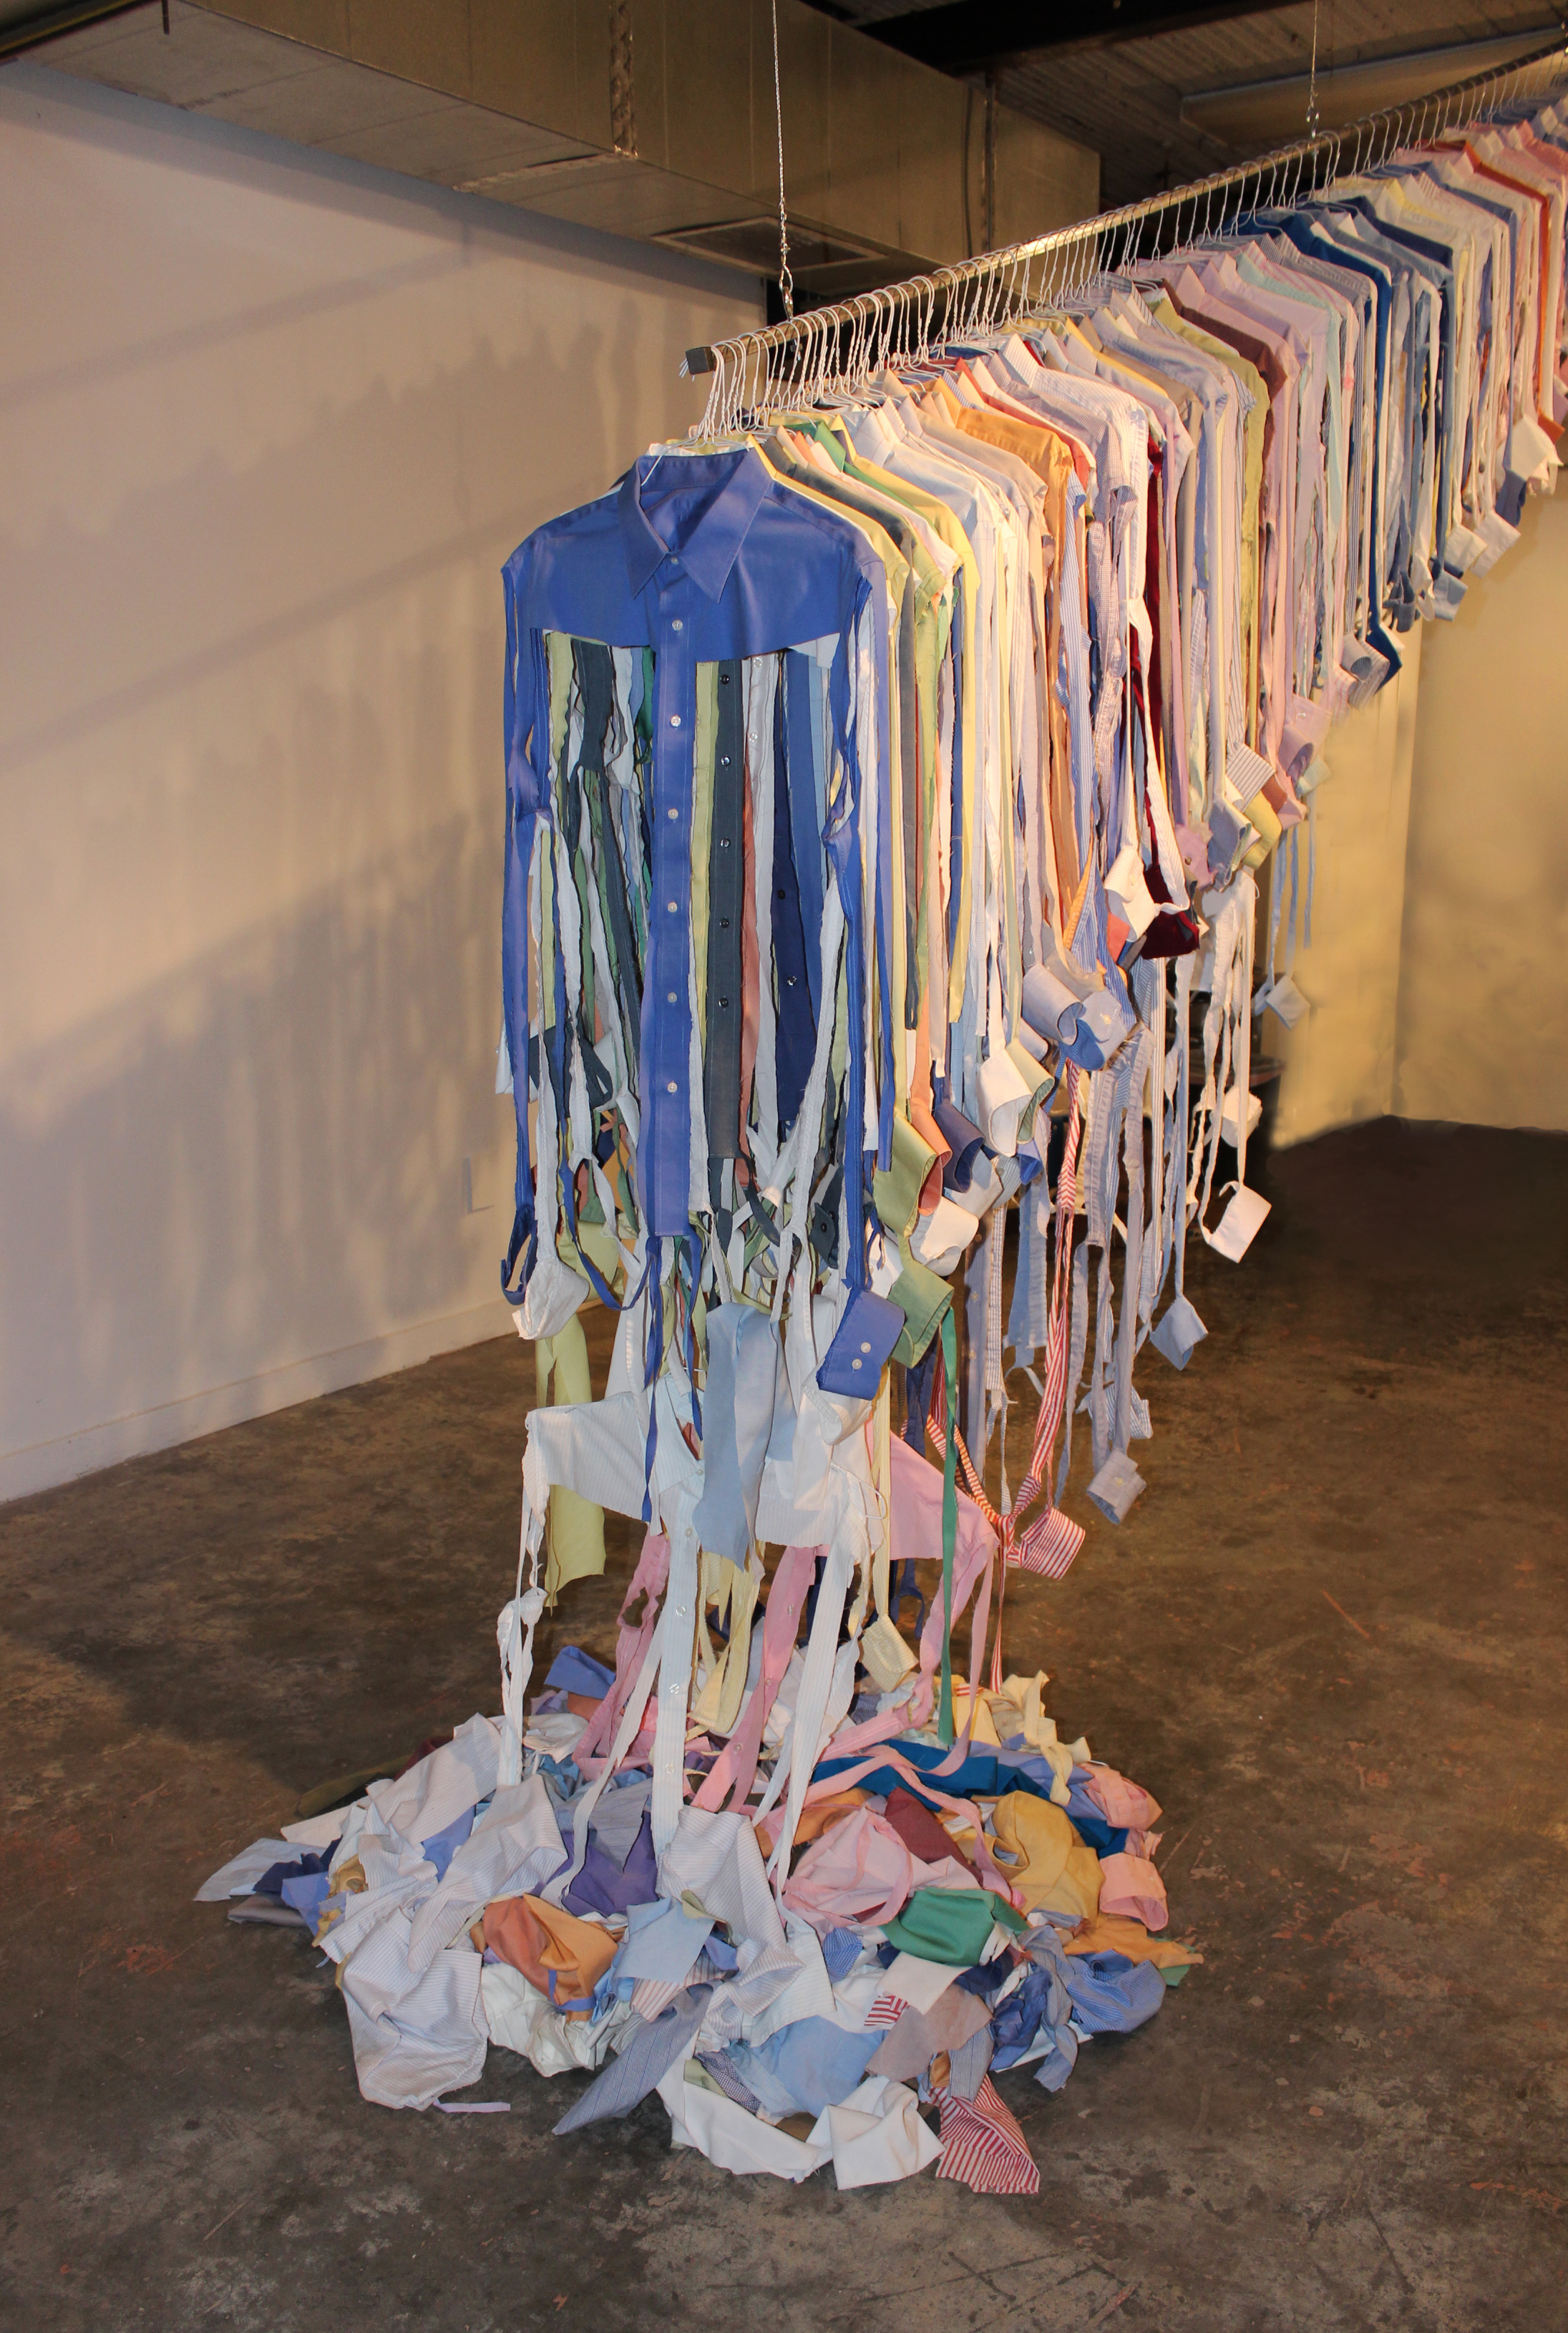 Sewing in the Shadows: Disposable Garments, Disposable People? (front view)